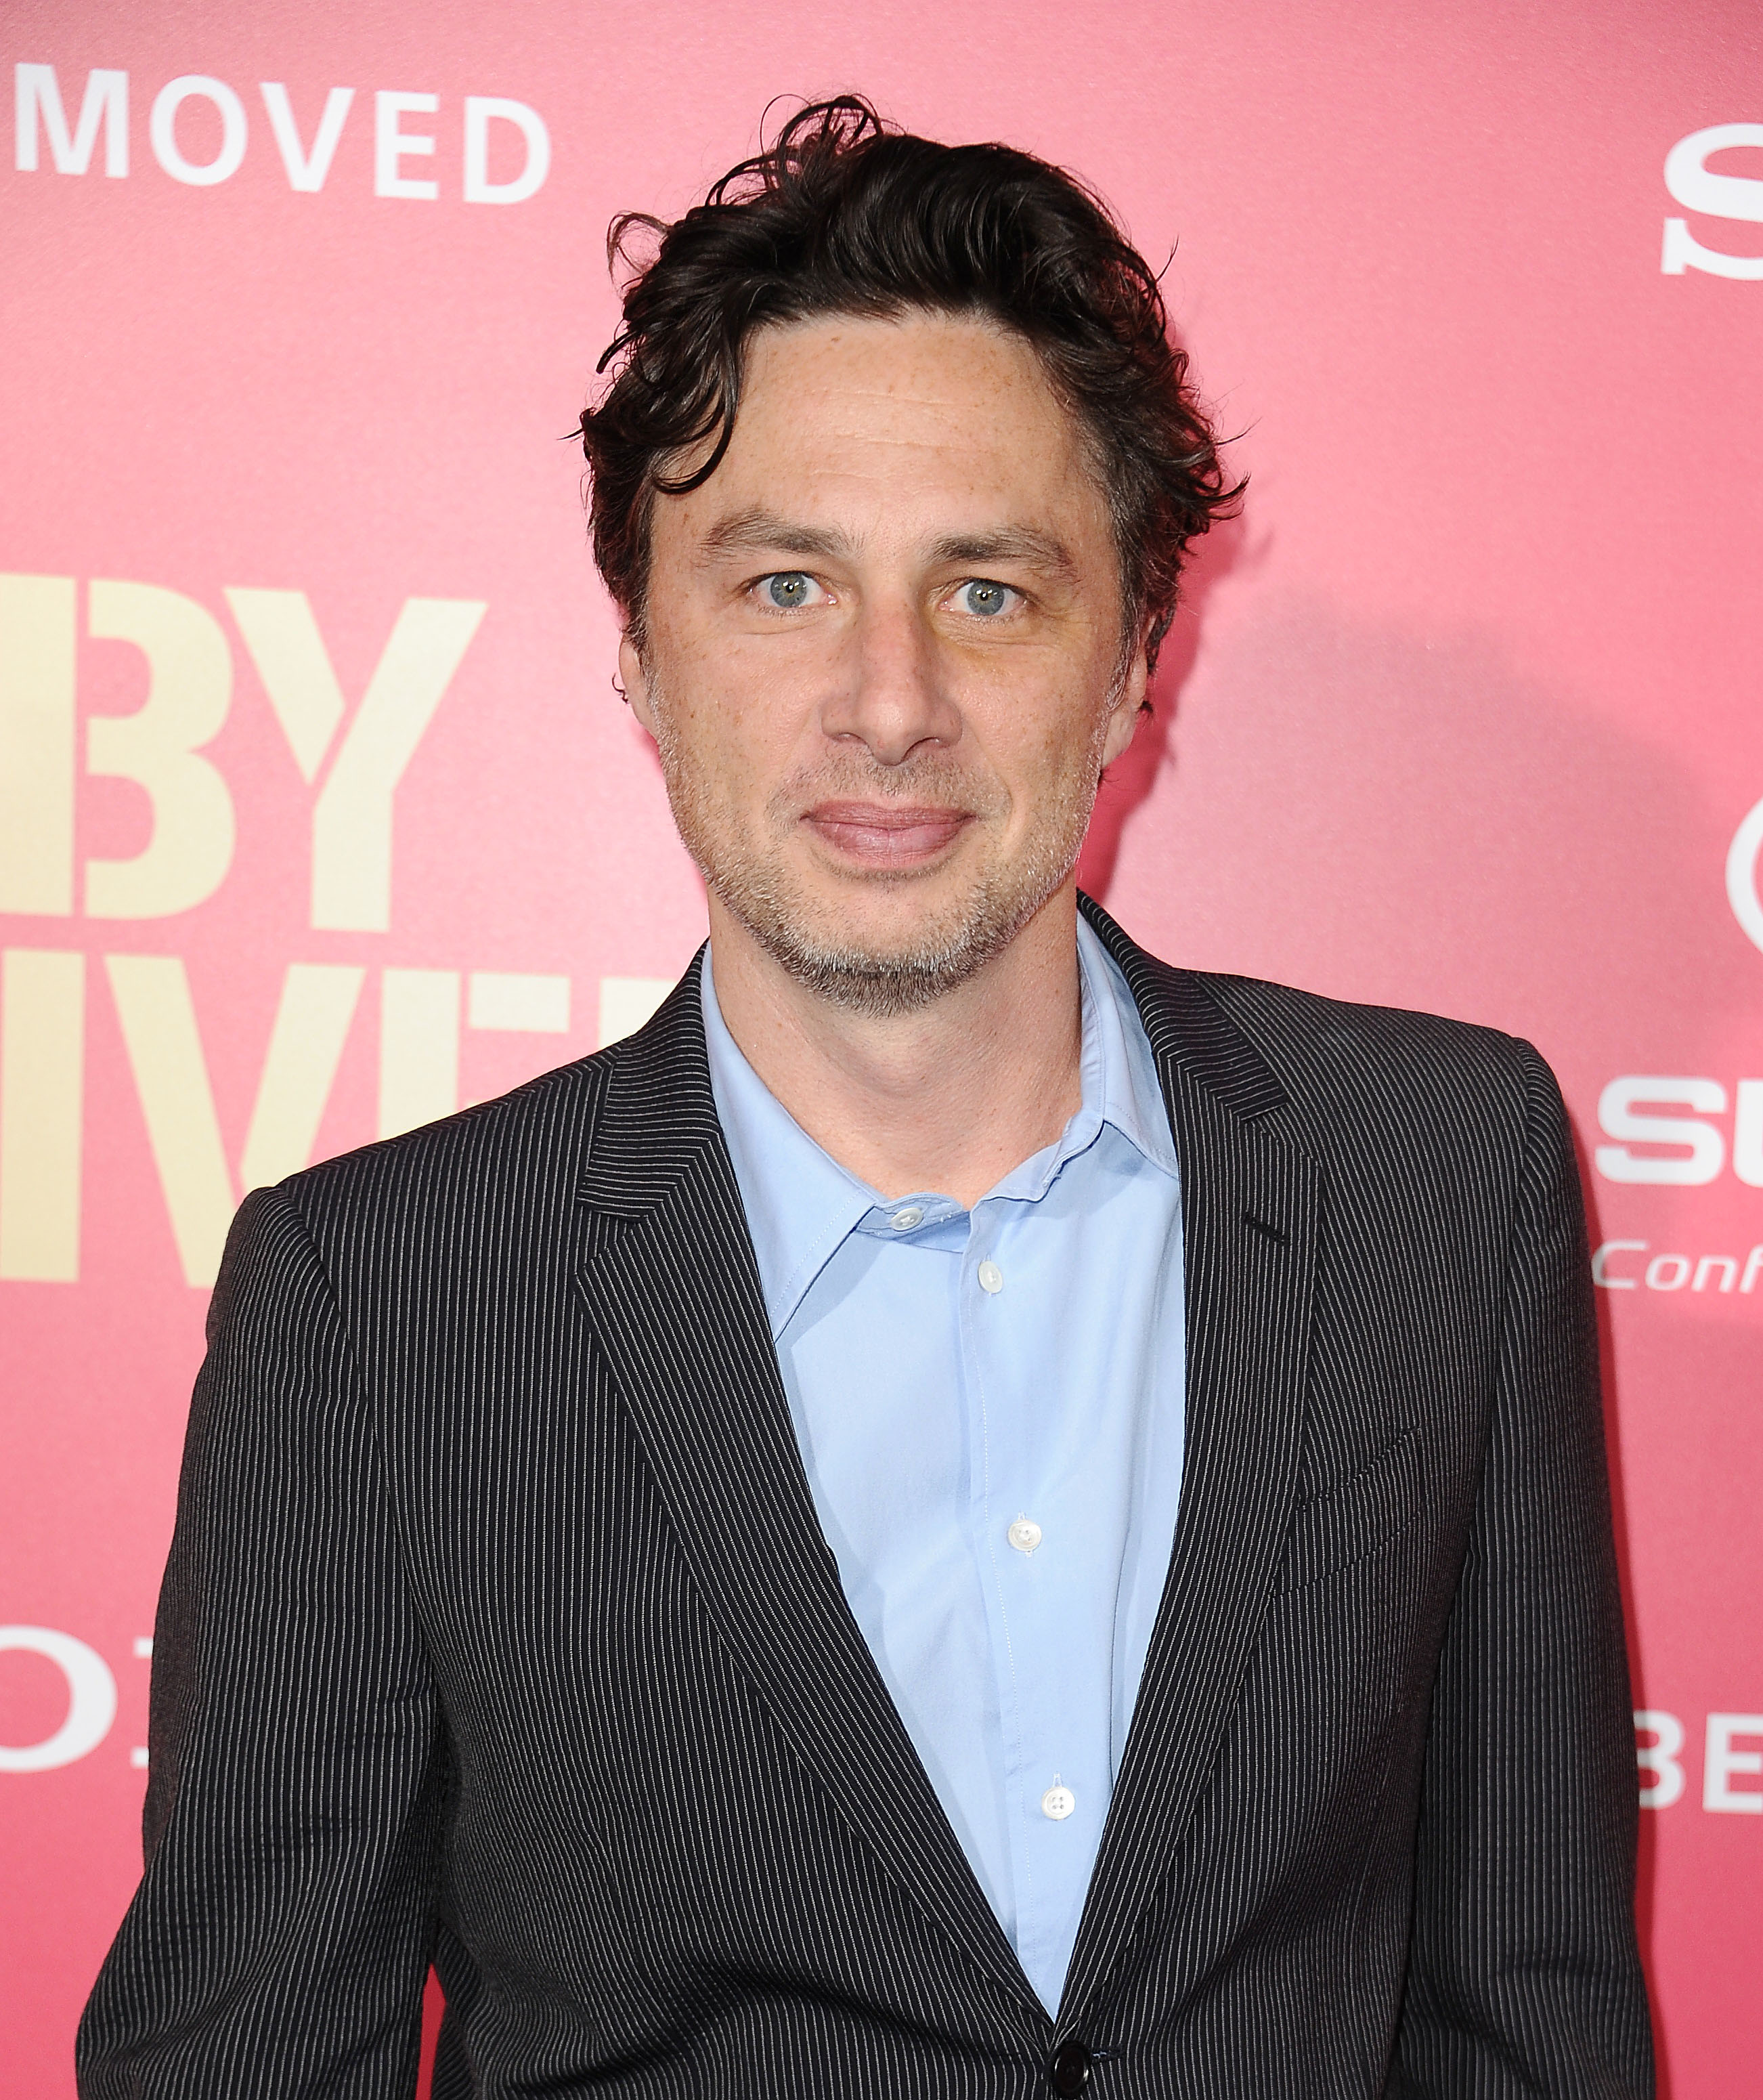 Zach Braff attends the premiere of Baby Driver at Ace Hotel on June 14, 2017 in Los Angeles, California.